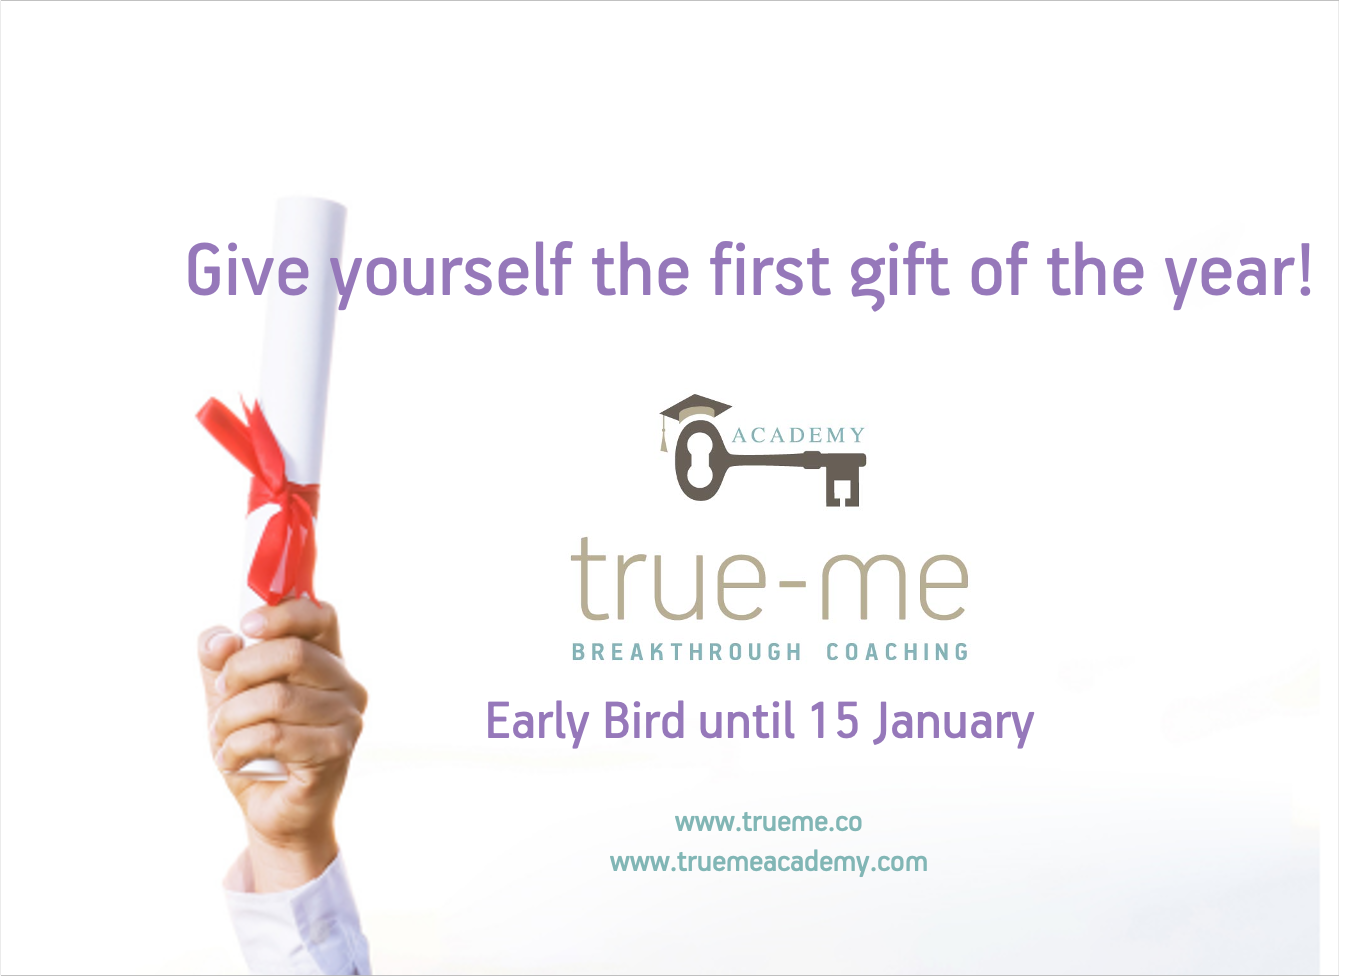 Give yourself the first gift of the year!